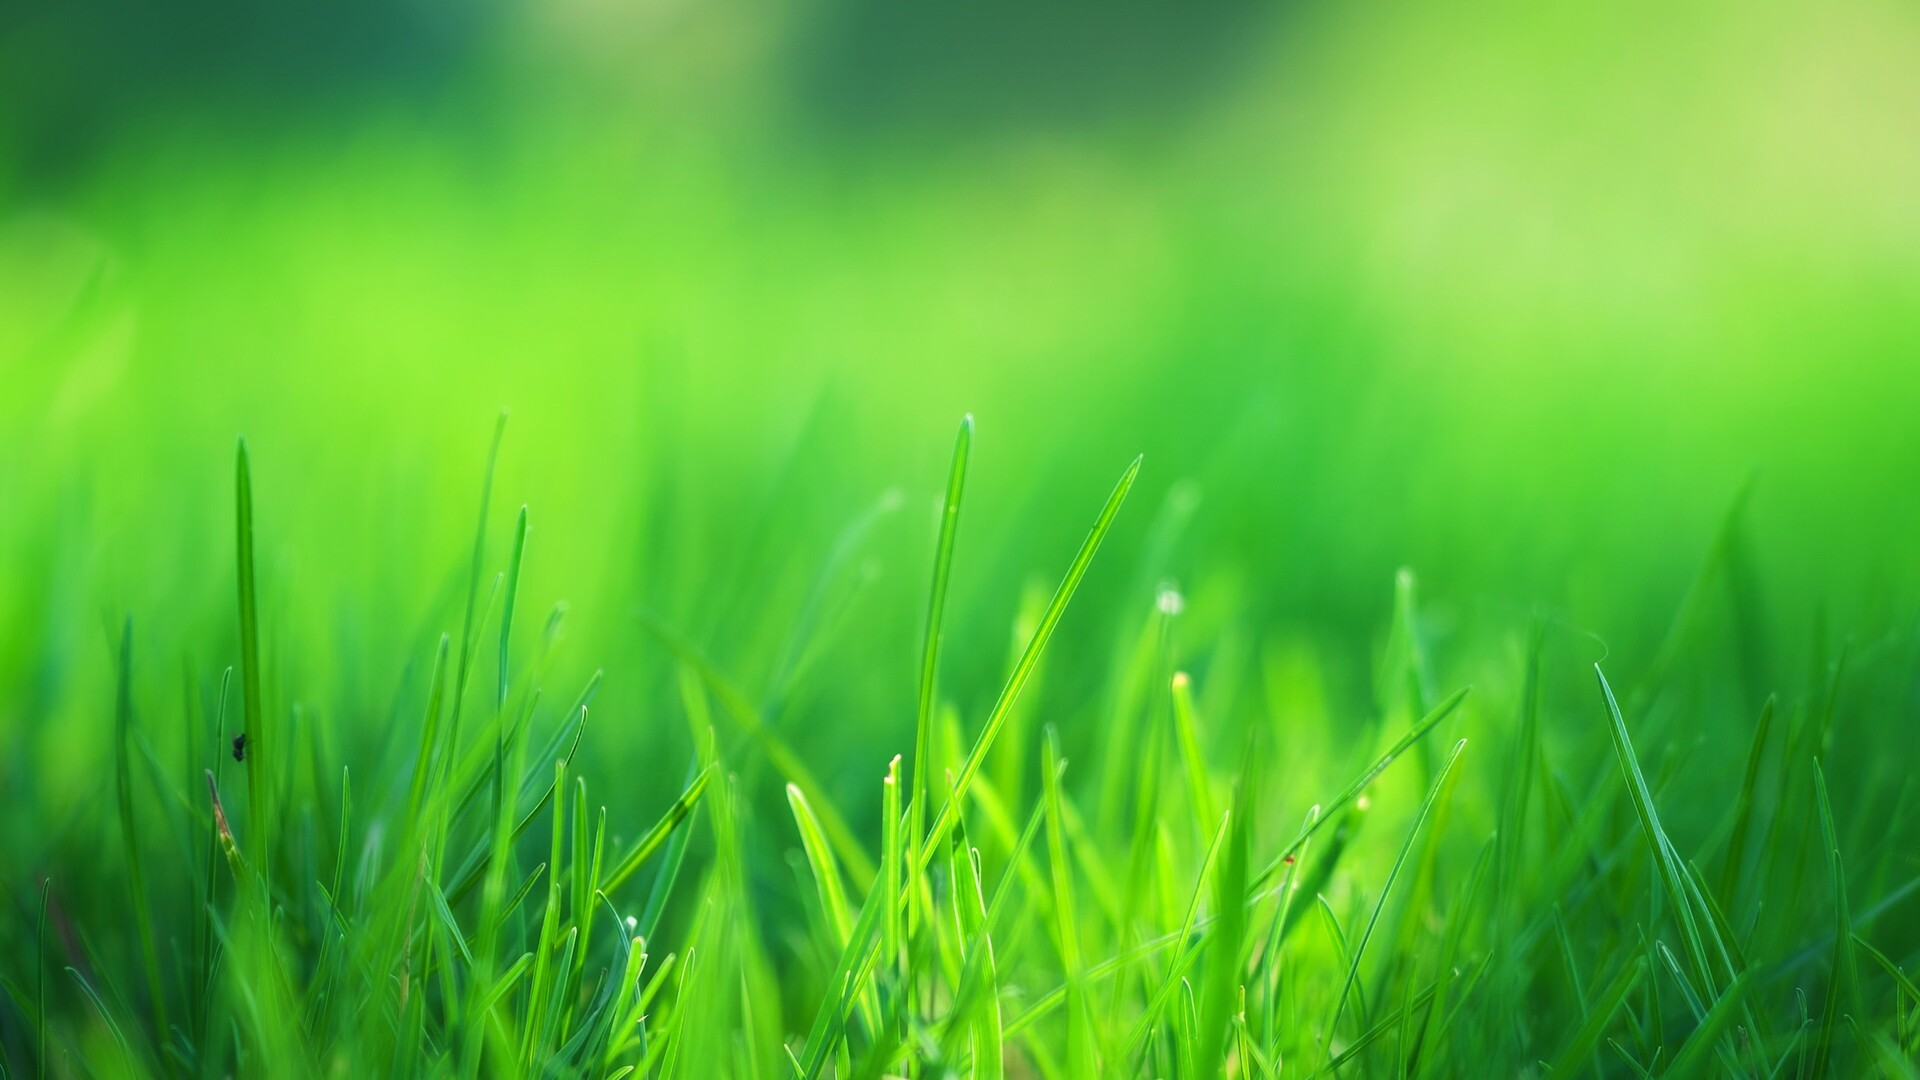 1920x1080 Green Grass Field Laptop Full Hd 1080p Hd 4k